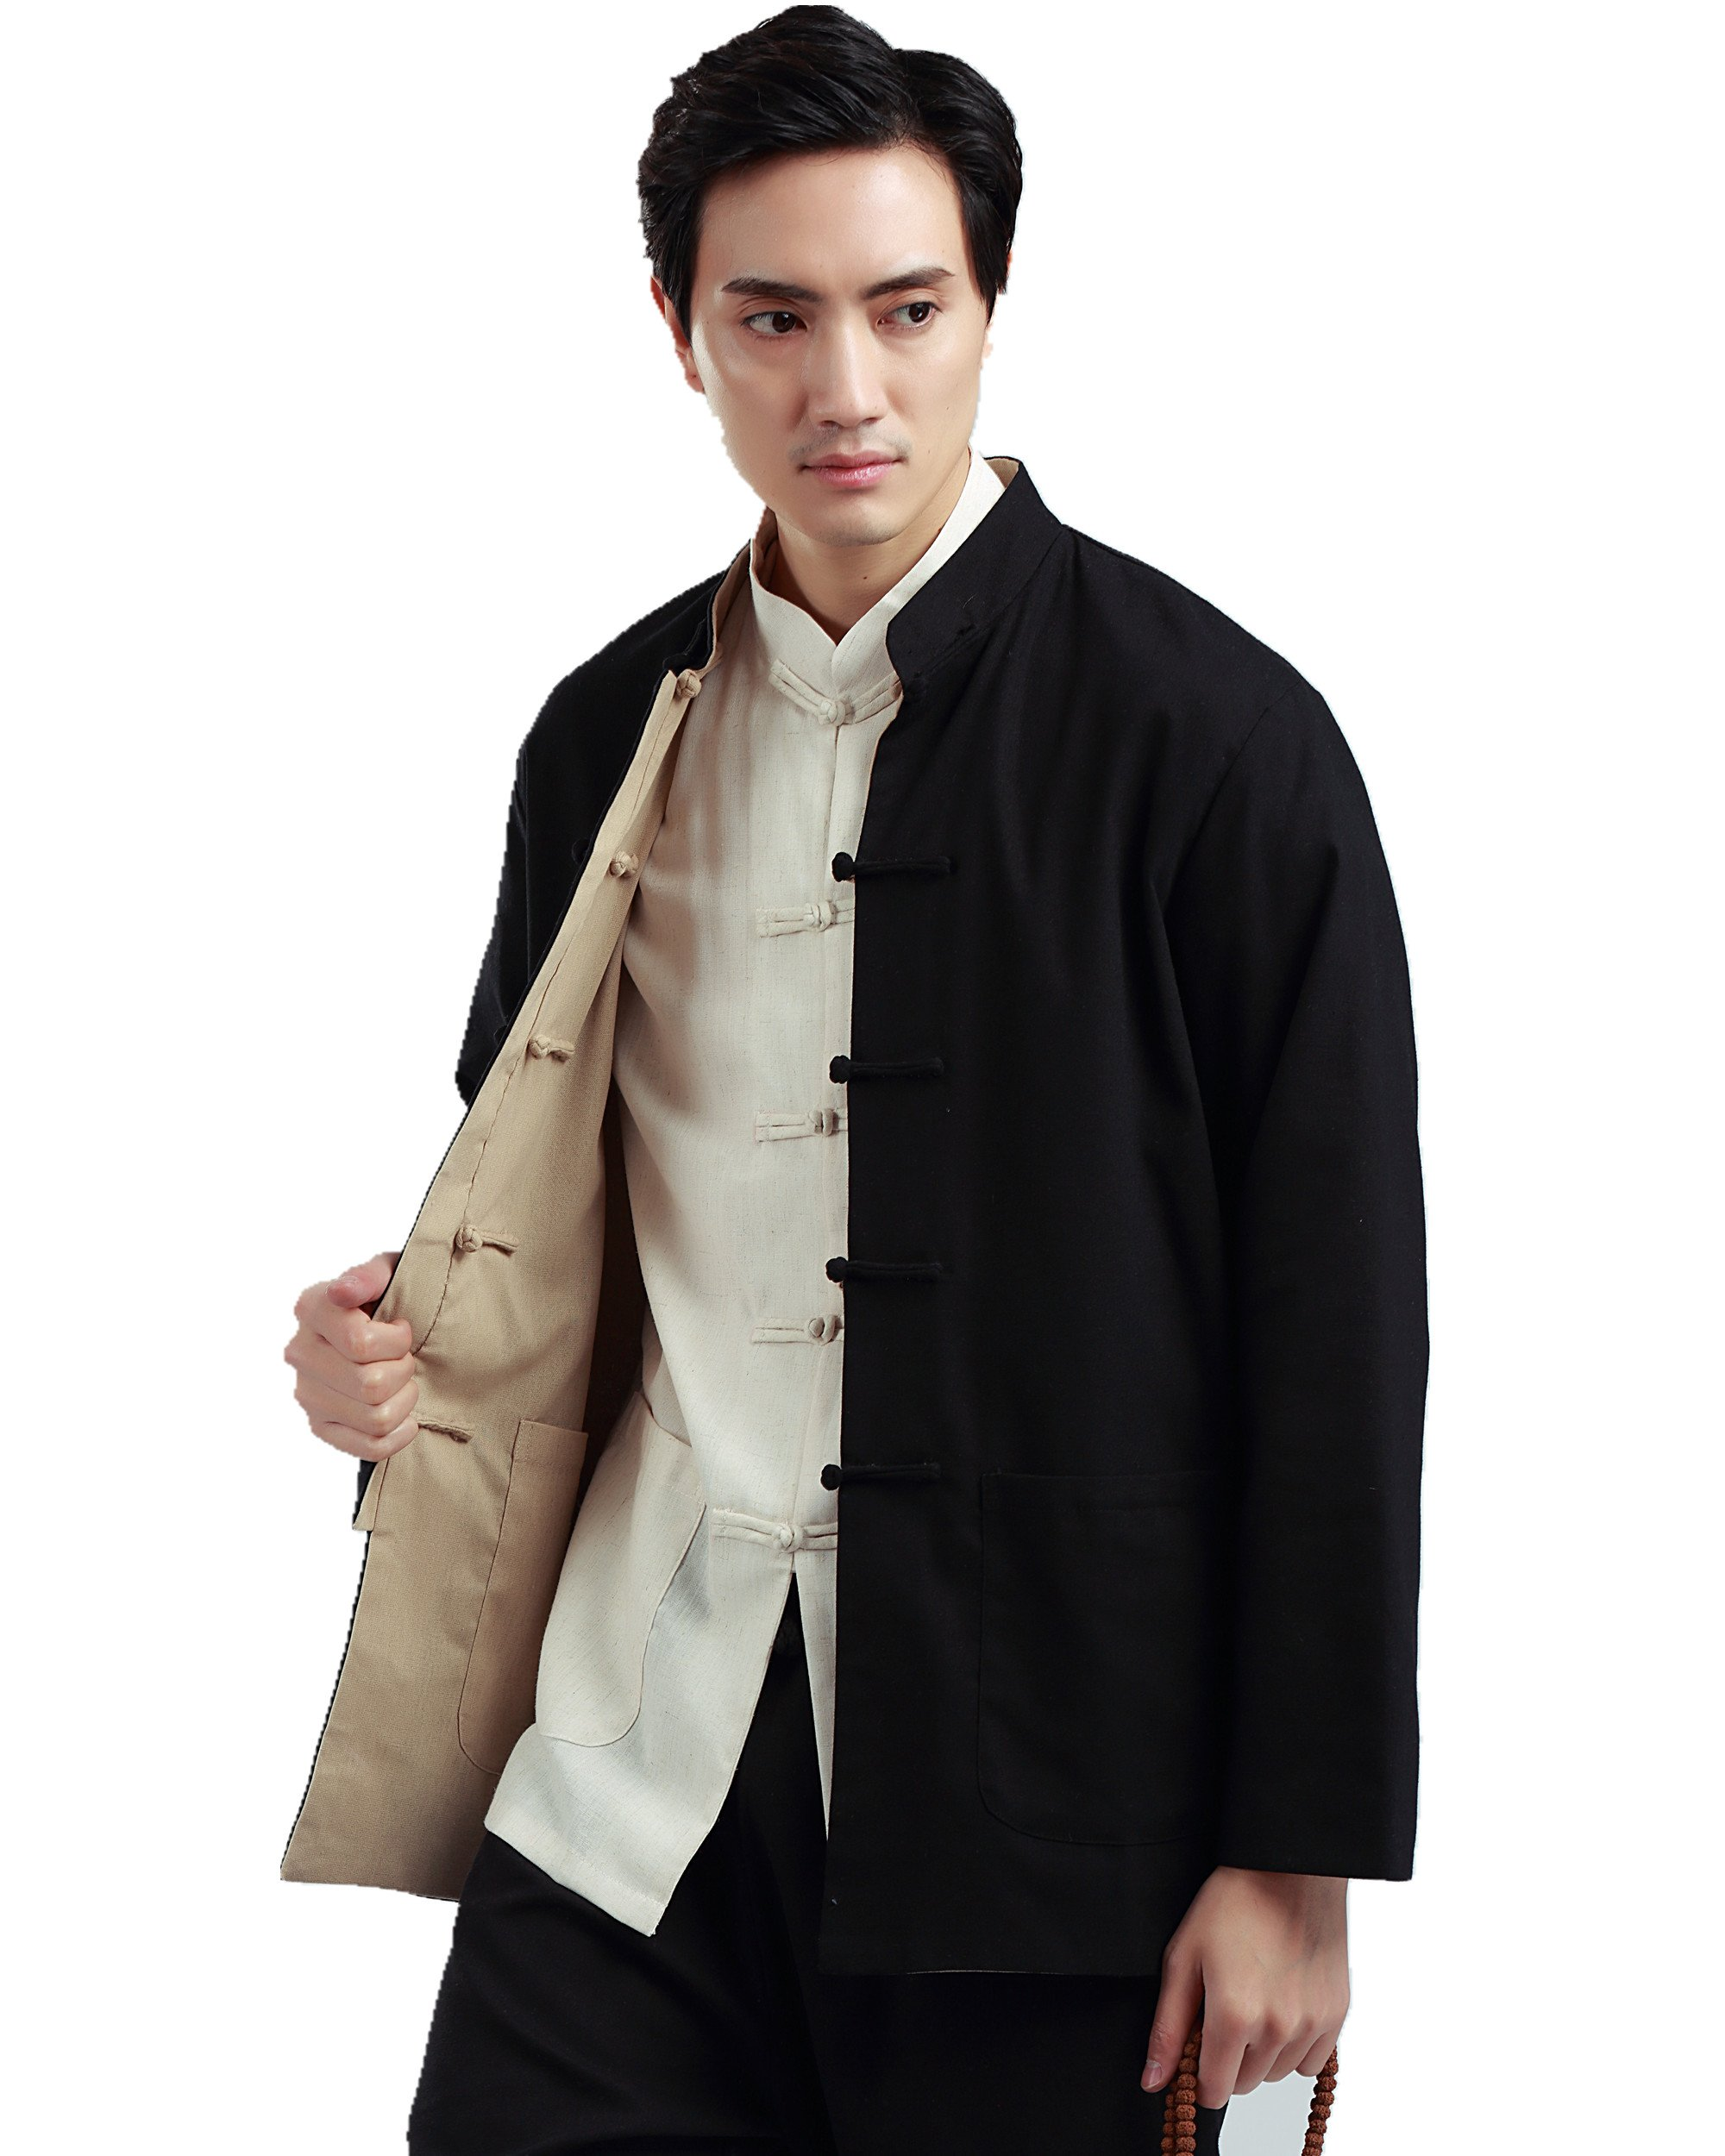 Shanghai Story Traditional Both Sides Wear Tang Kung Fu Jacket Black/Beige 5XL by Shanghai Story